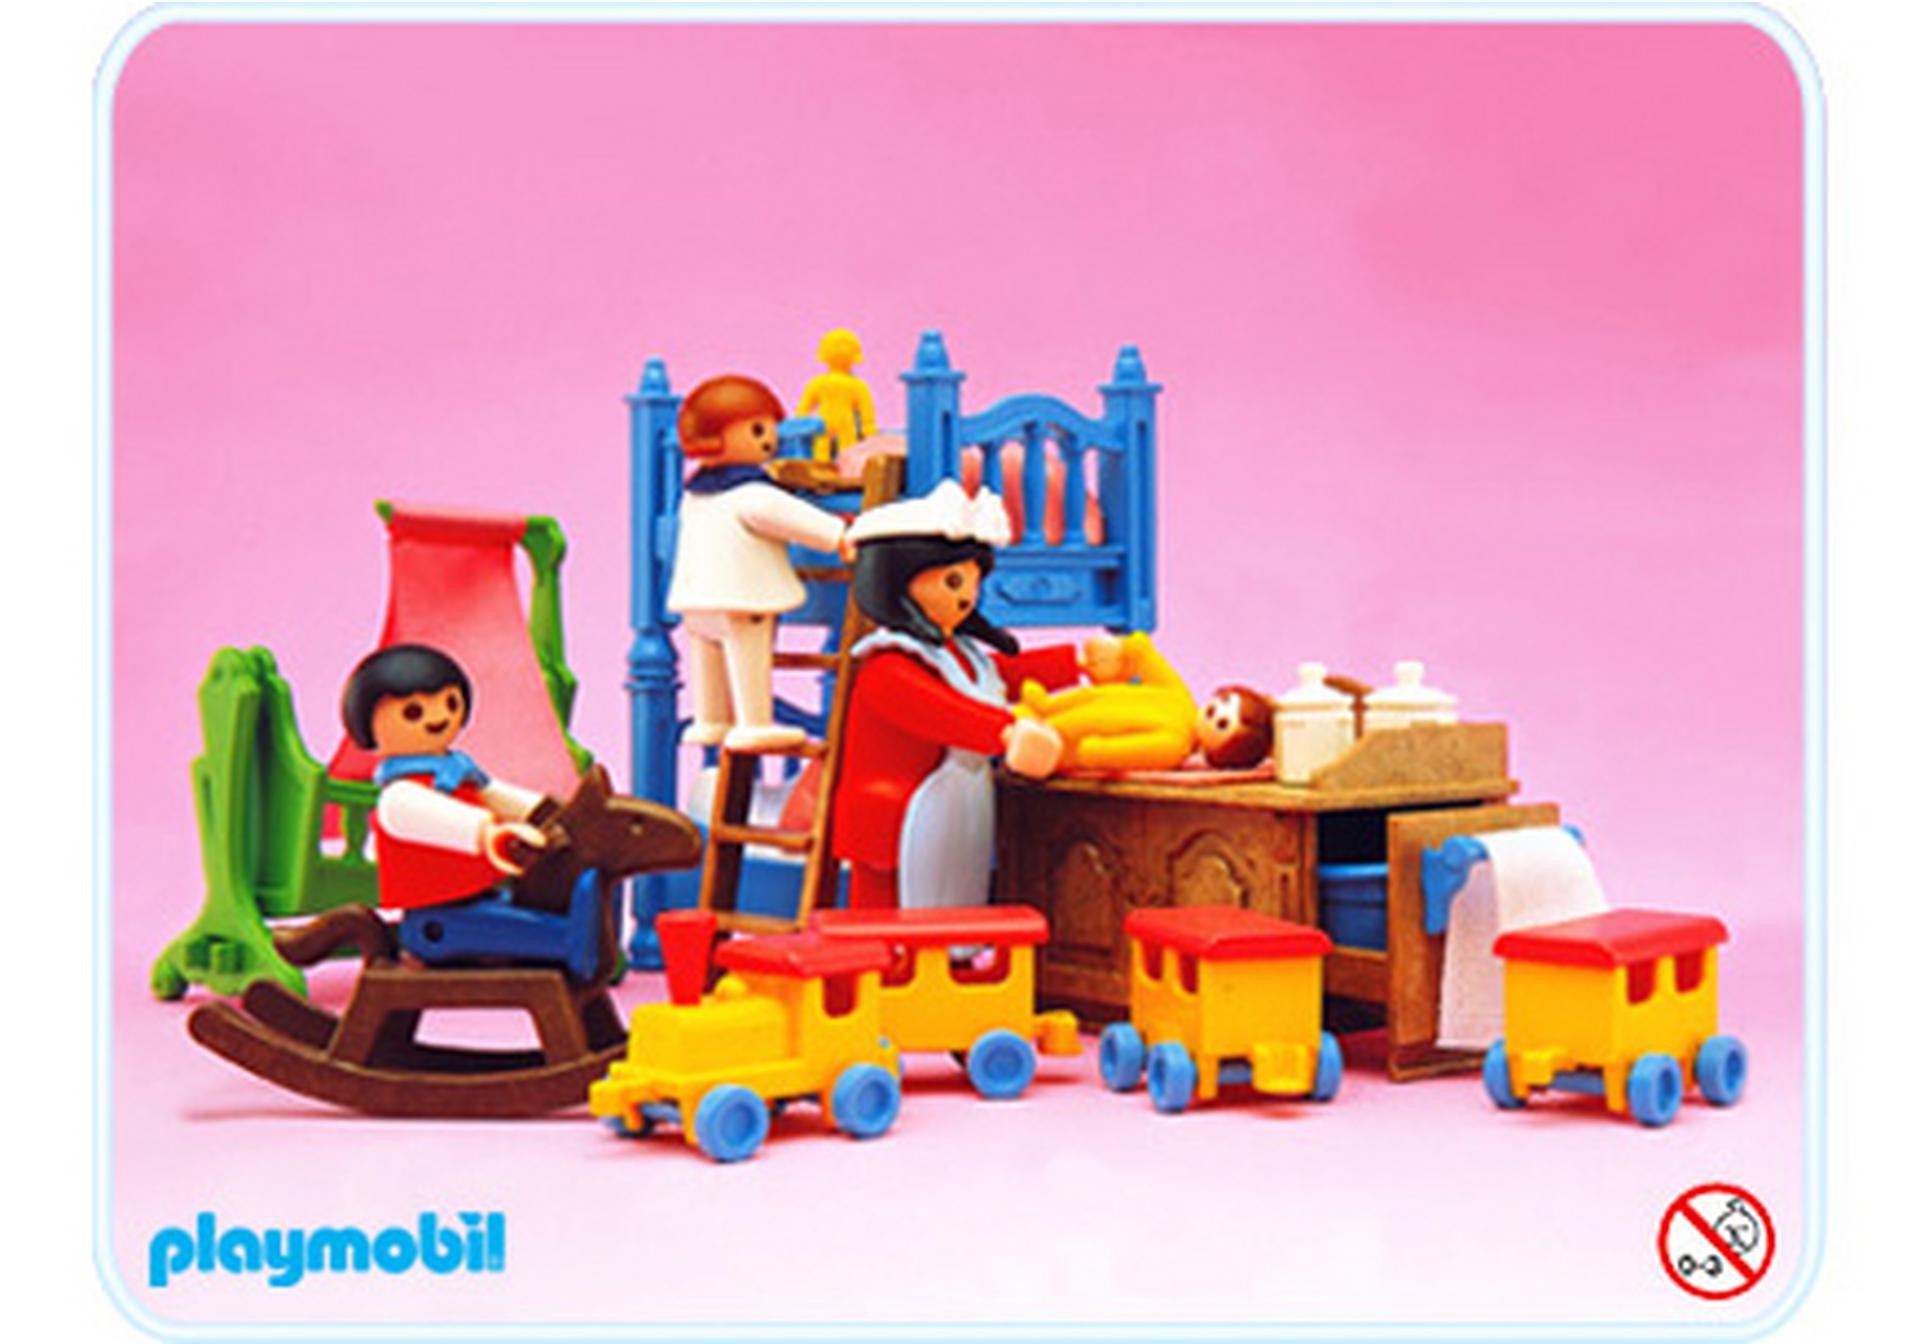 Kinderzimmer set 5311 a playmobil deutschland for Kinderzimmer playmobil